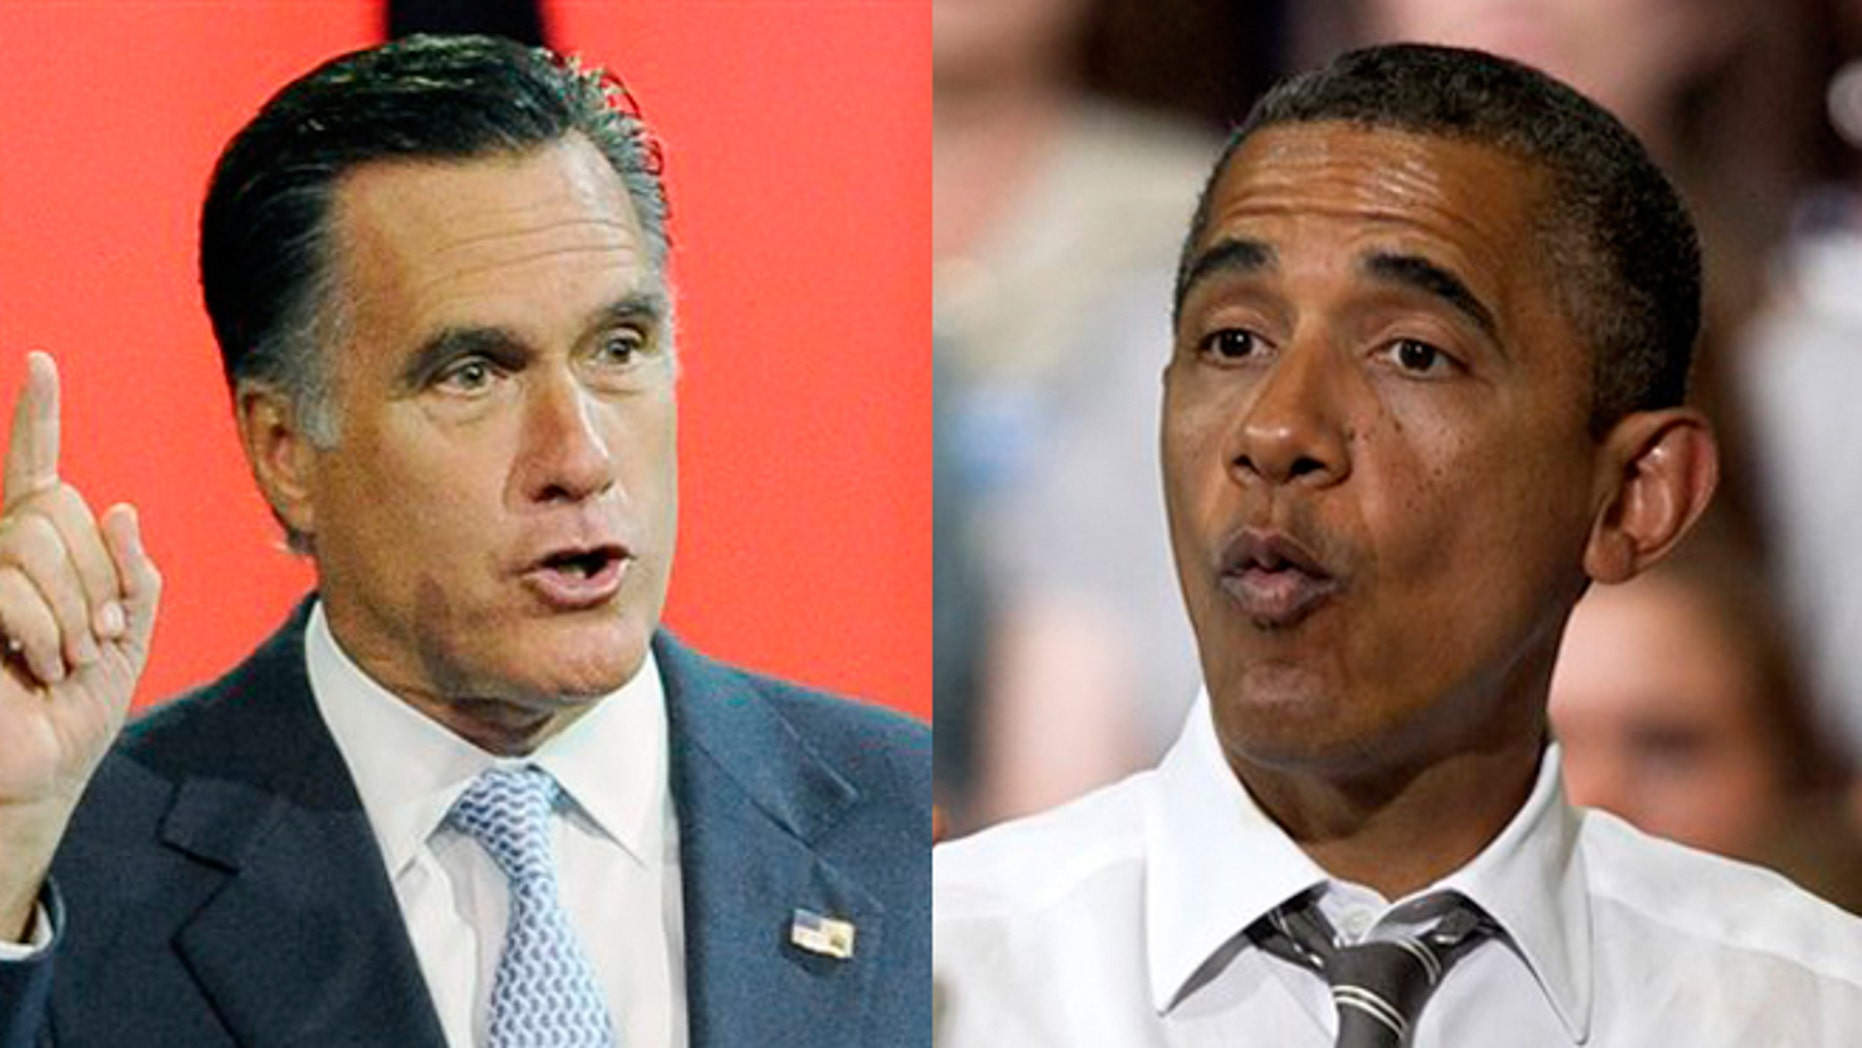 Mitt Romney only has himself to blame for Team Obama's Bain